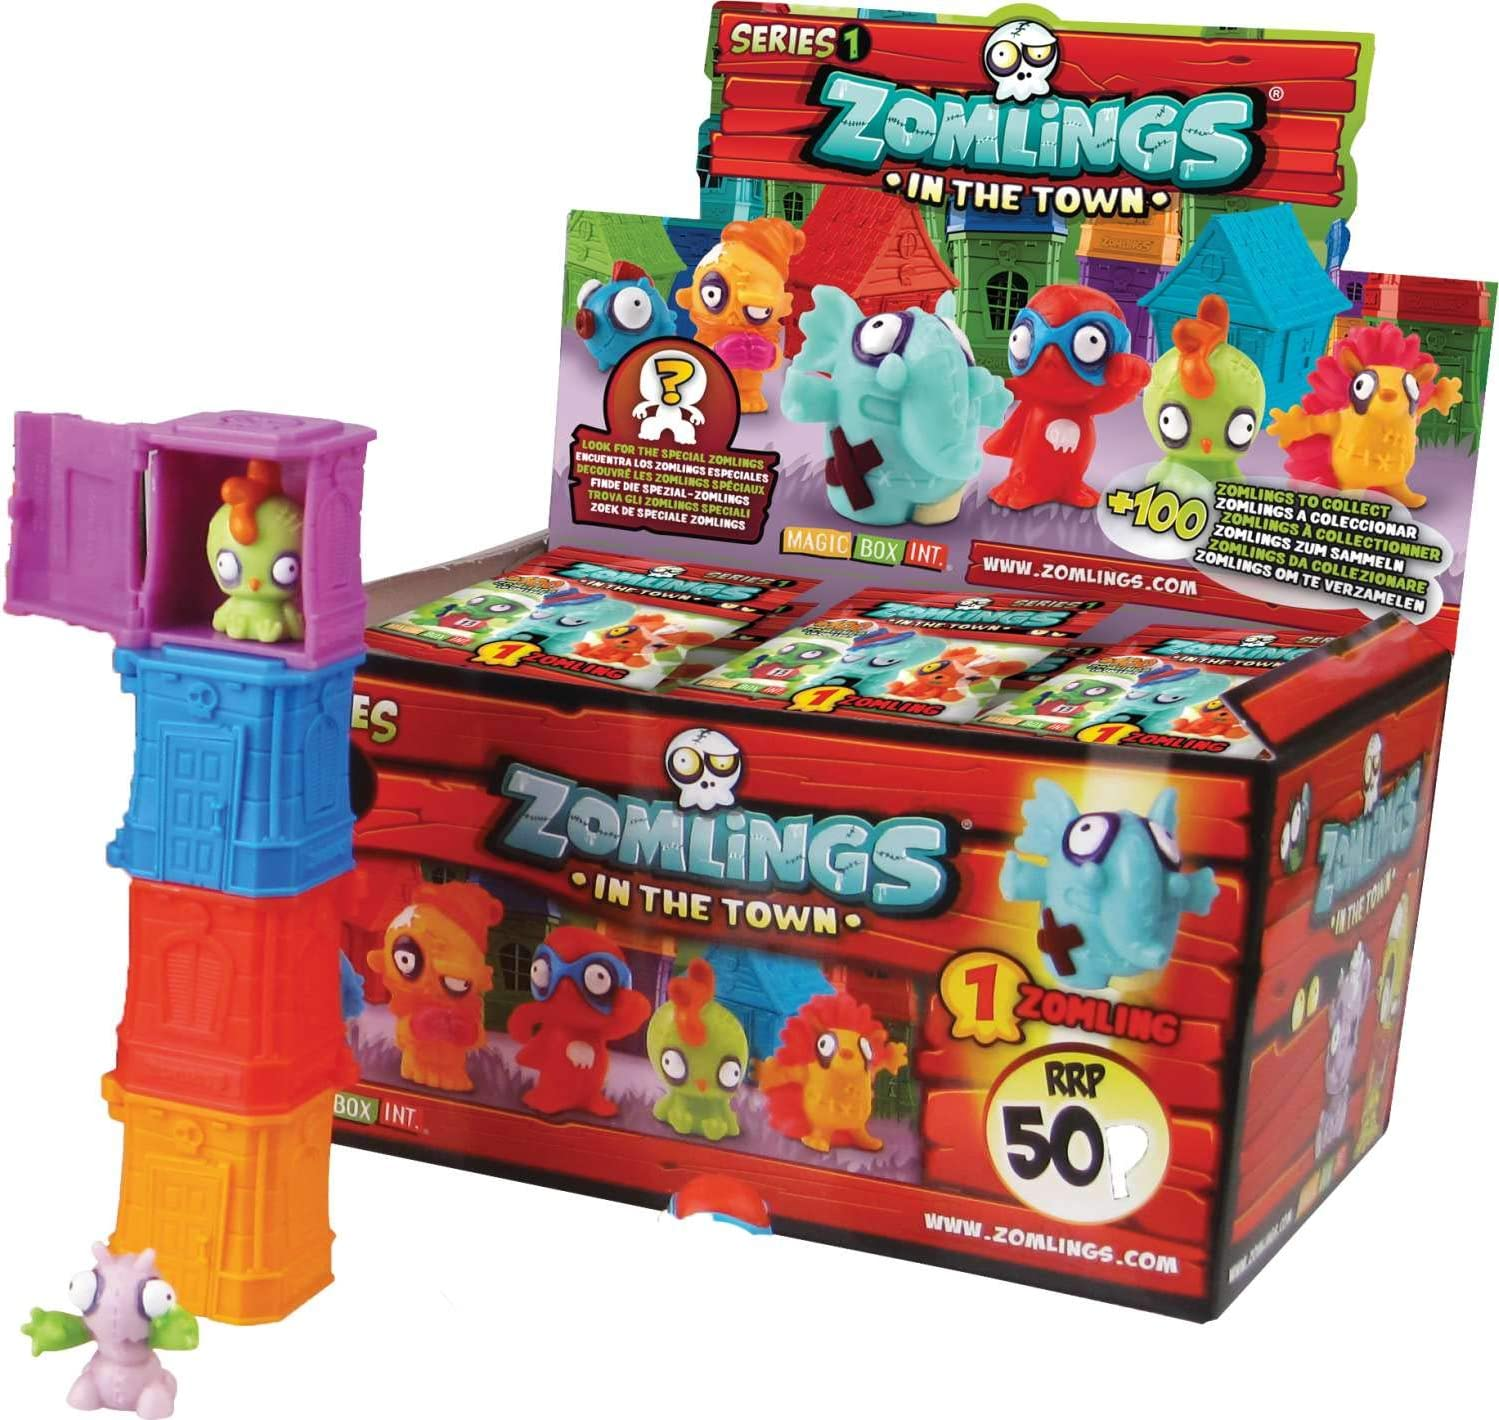 Magic Box Int - Zomlings Tower Pack CDU (Set of 24): Amazon.es: Juguetes y juegos